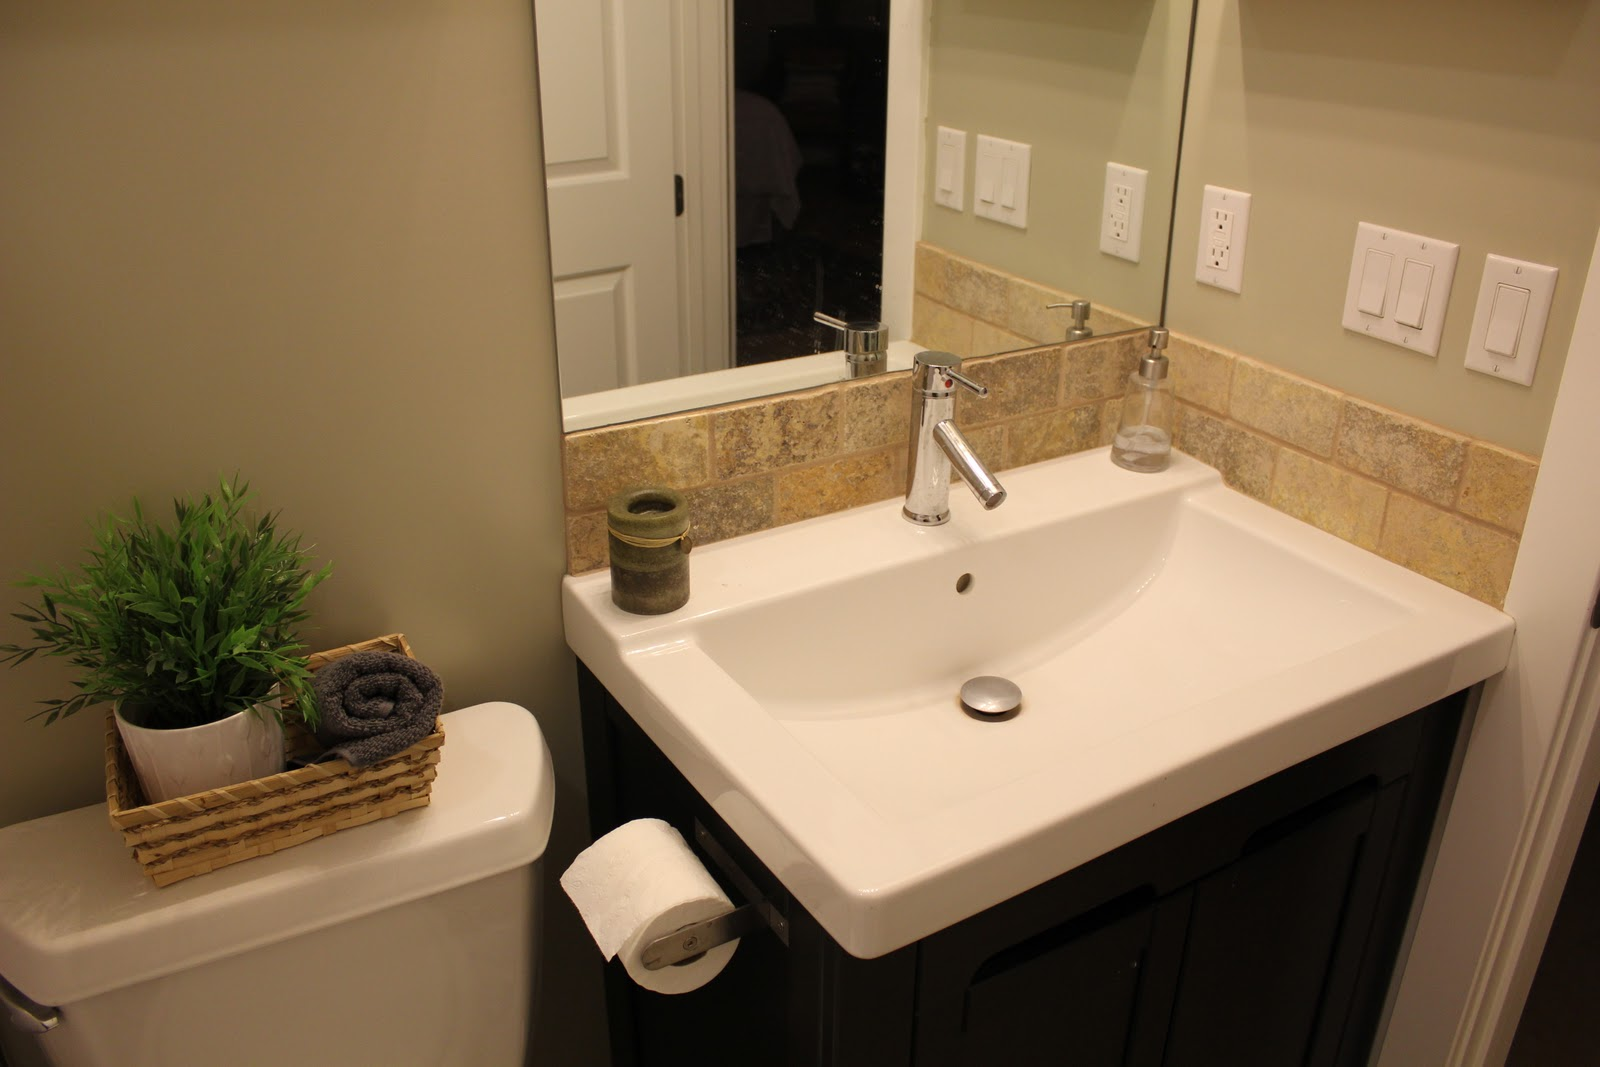 Suite revival bathroom tour - Ikea bathrooms images ...